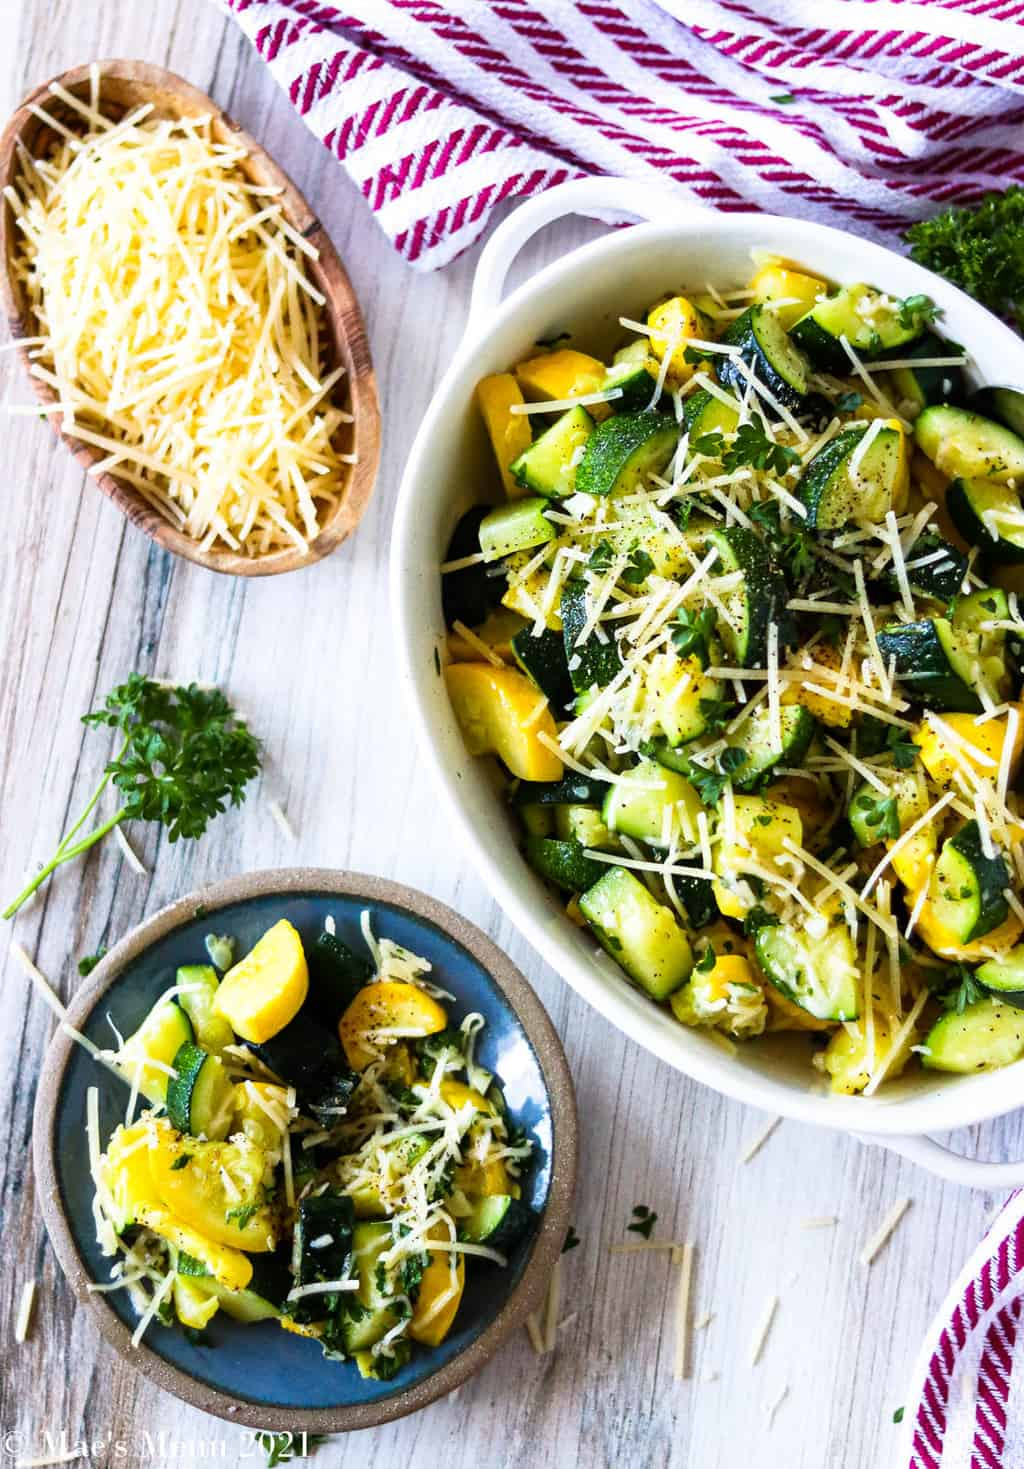 A small dish of sauteed zucchini and yellow squash next to a white serving bowl of it